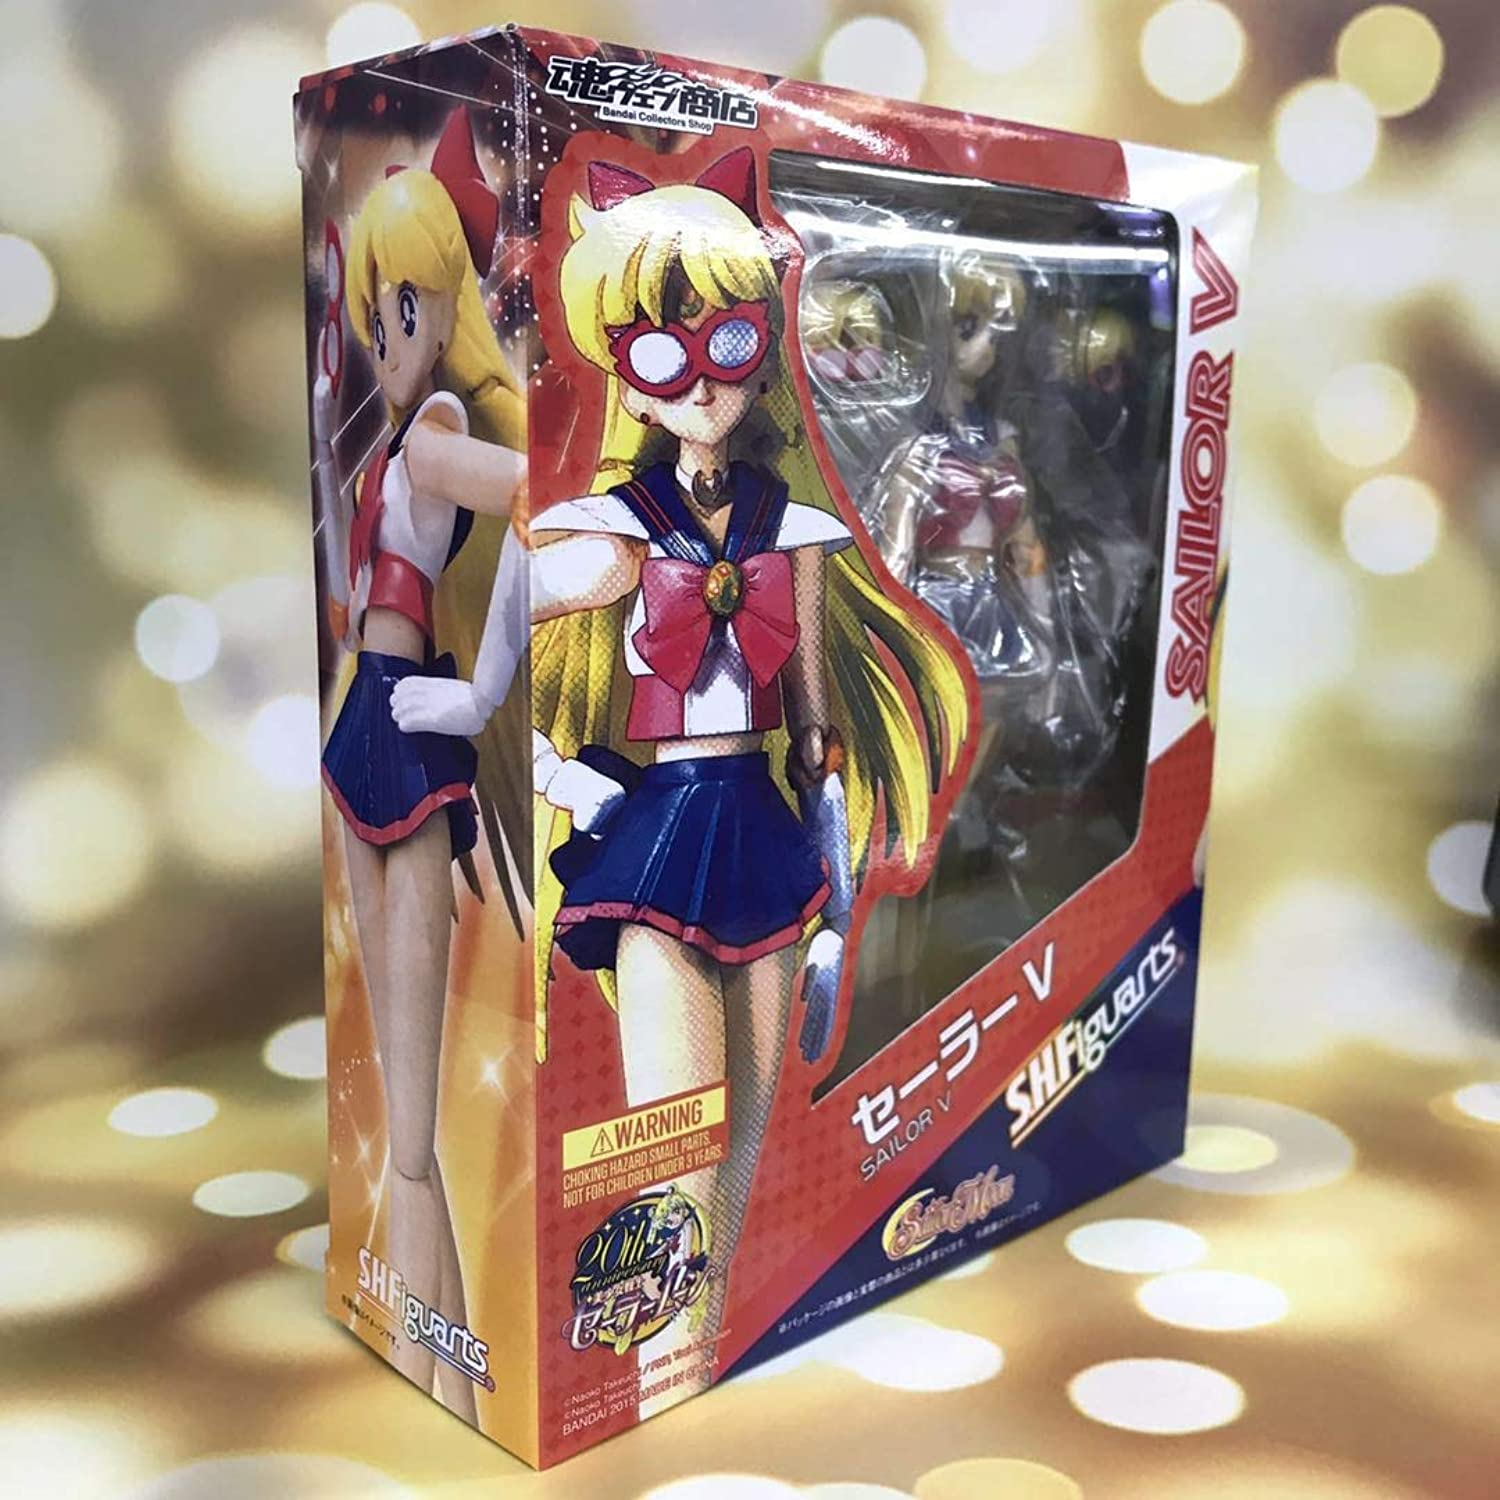 Allegro Huyer SHF Sailor Moon Anime Sailor v Venus bjd Collection Beauty Girls Action Figure Toys 15cm(with Retail Box)